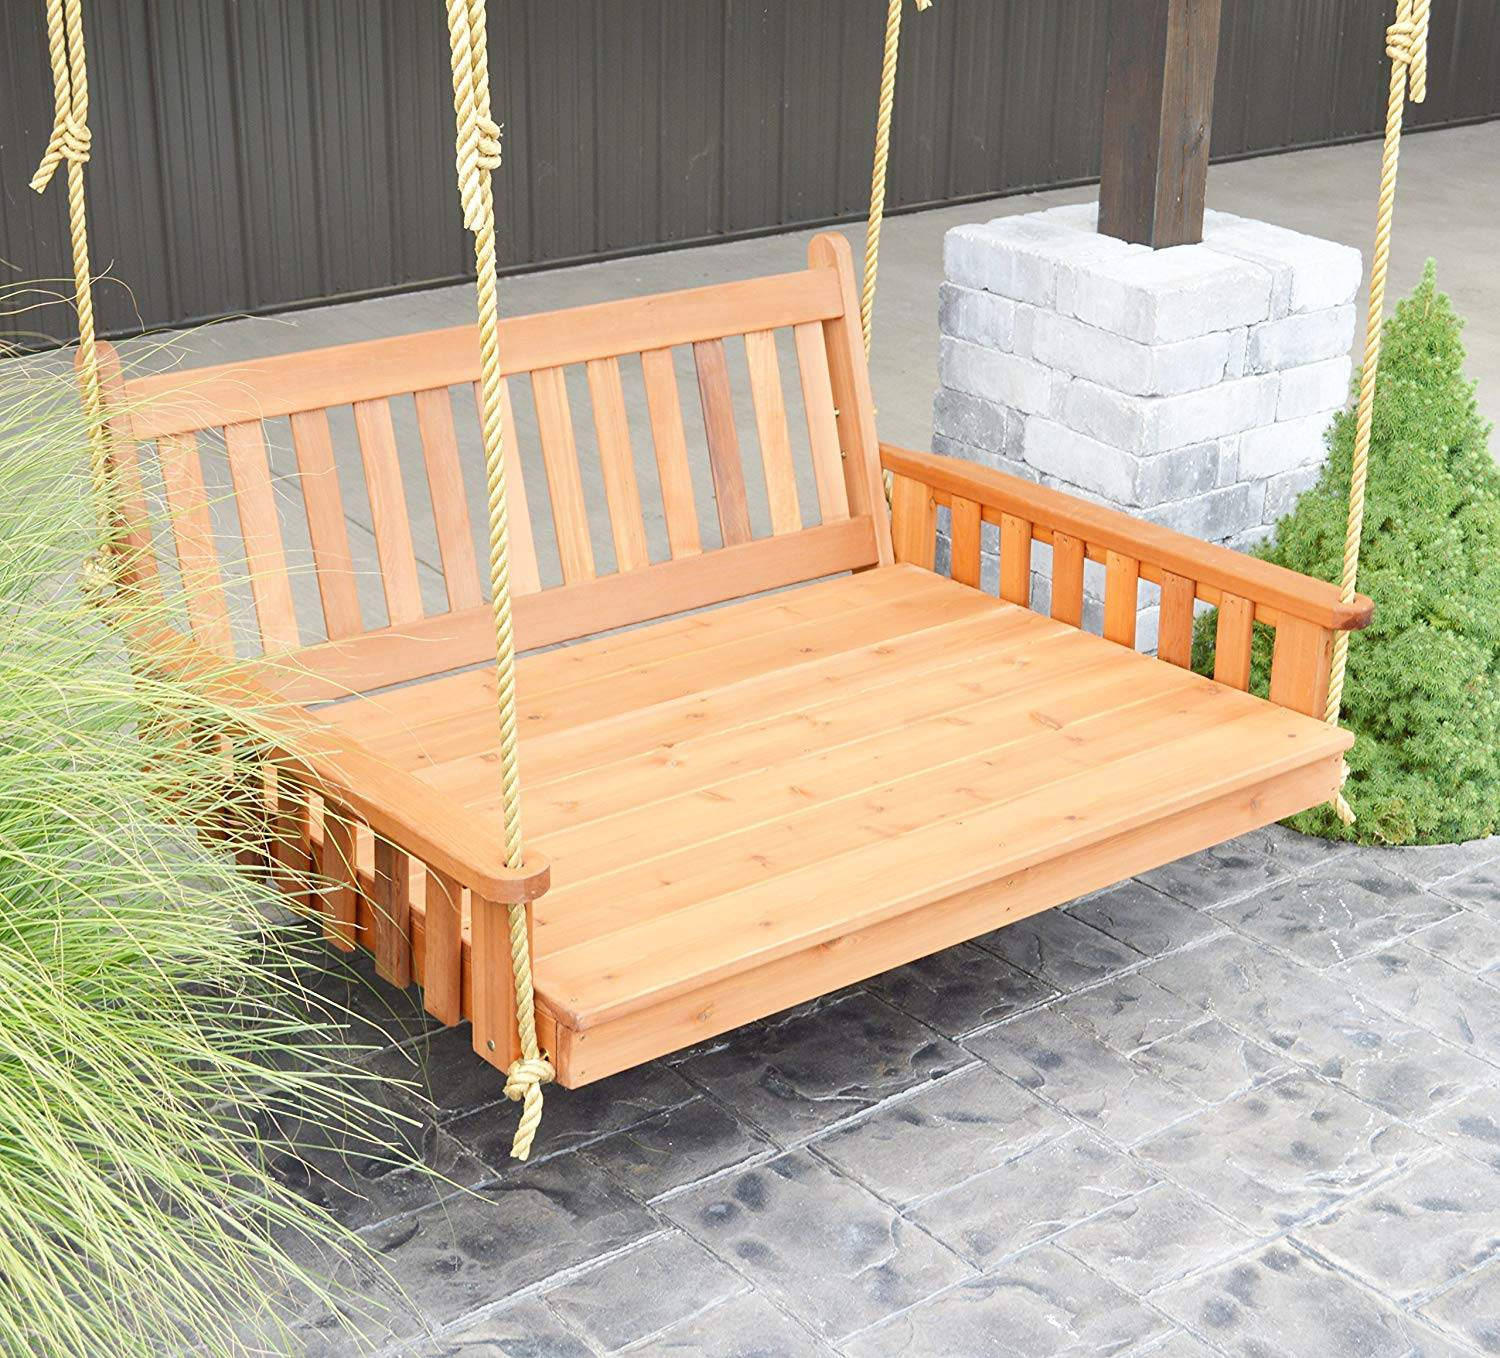 Hanging Porch Swing Plans Images Swinging Beds Designs Round Regarding Patio Hanging Porch Swings (View 22 of 25)